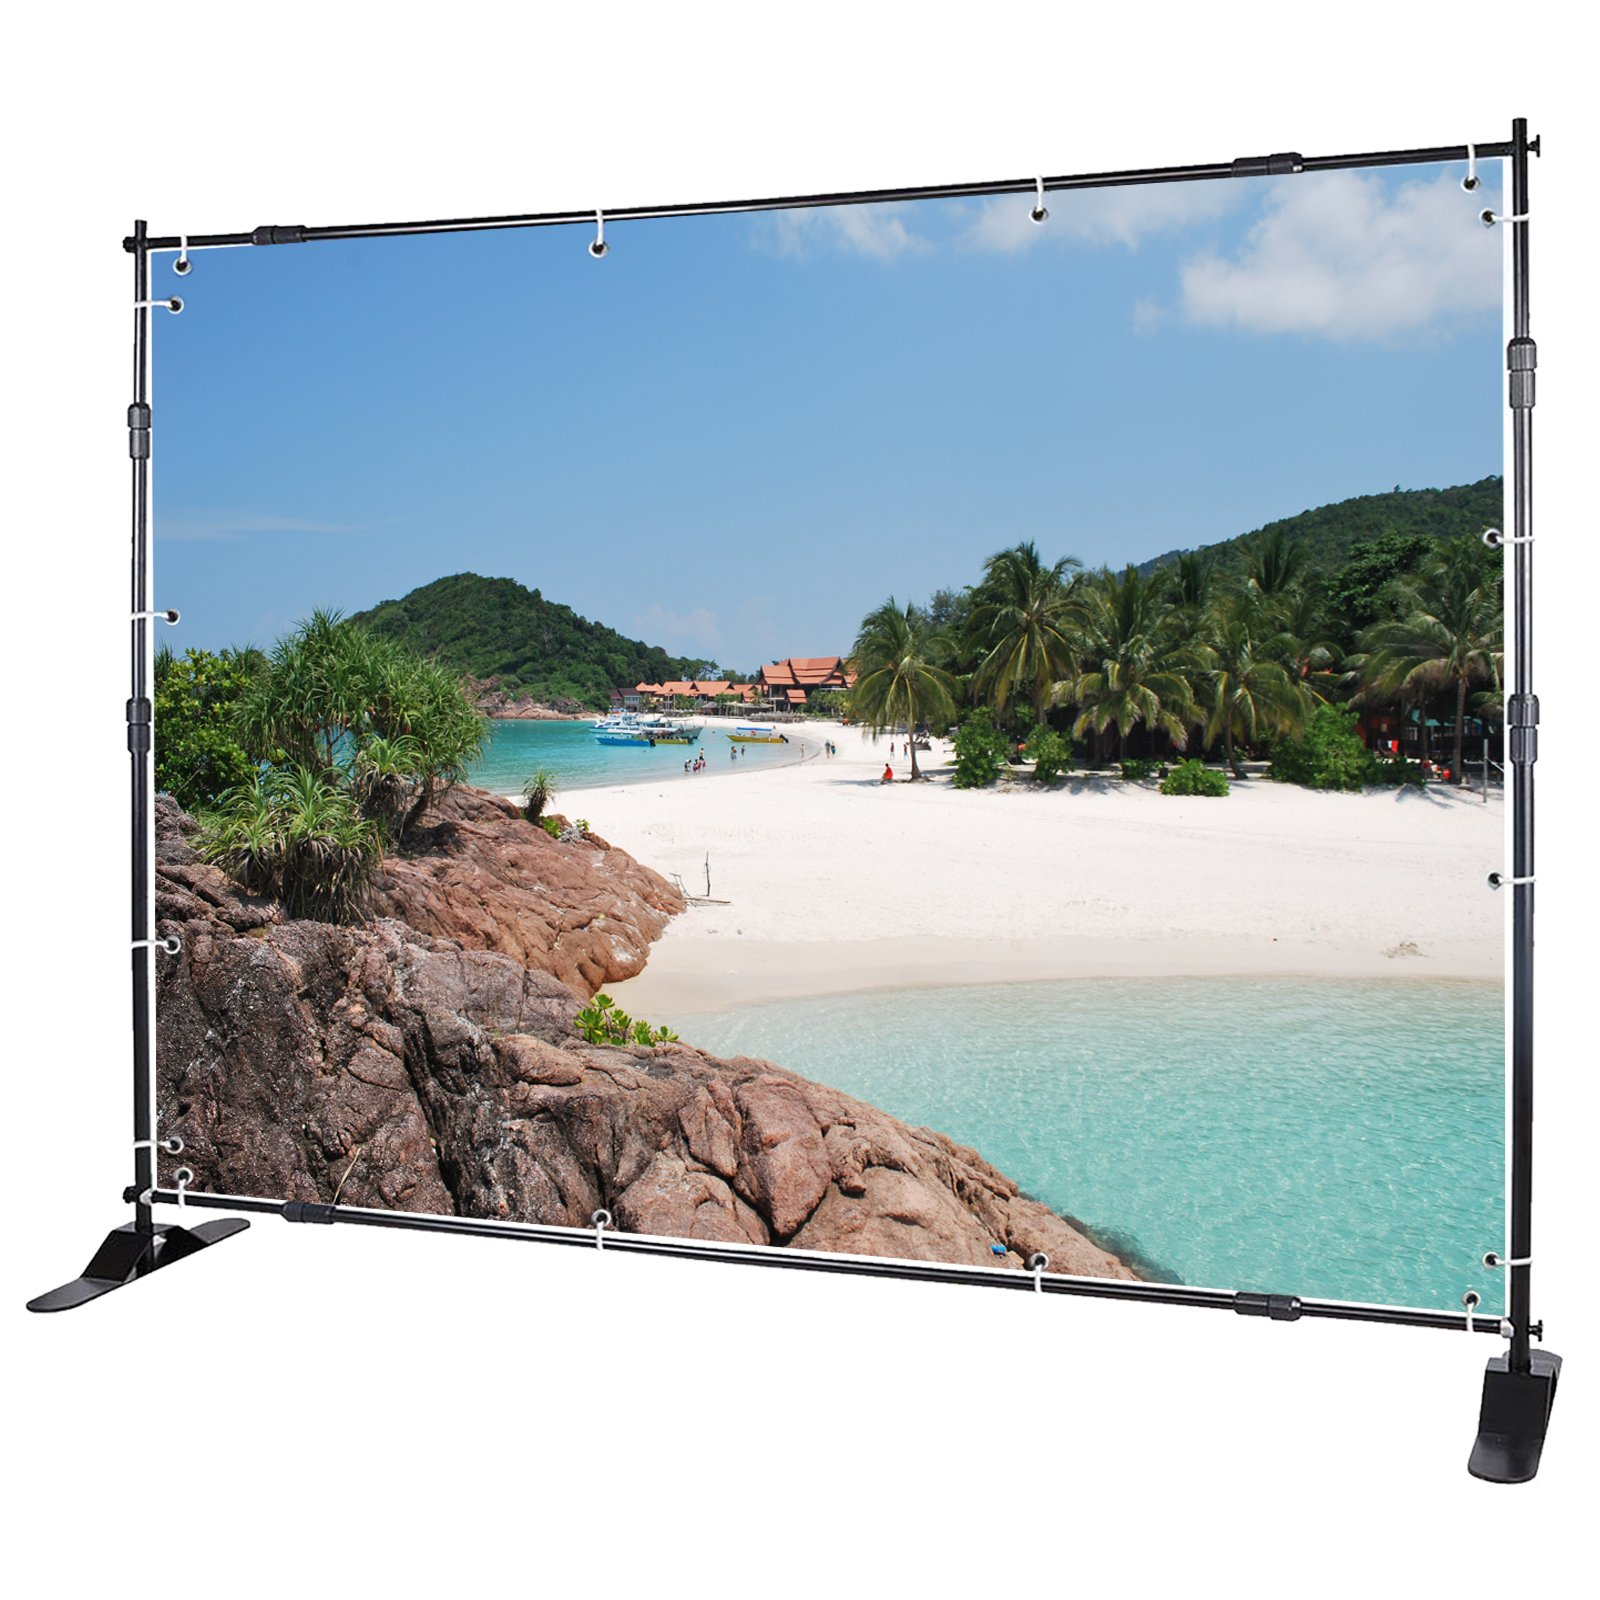 Voilamart Banner Stand 8' x 8' Adjustable Telescopic Display Backdrop Stand Step and Repeat for Trade Show, Photo Booth, Wall Exhibitor Background with Carrying Bag